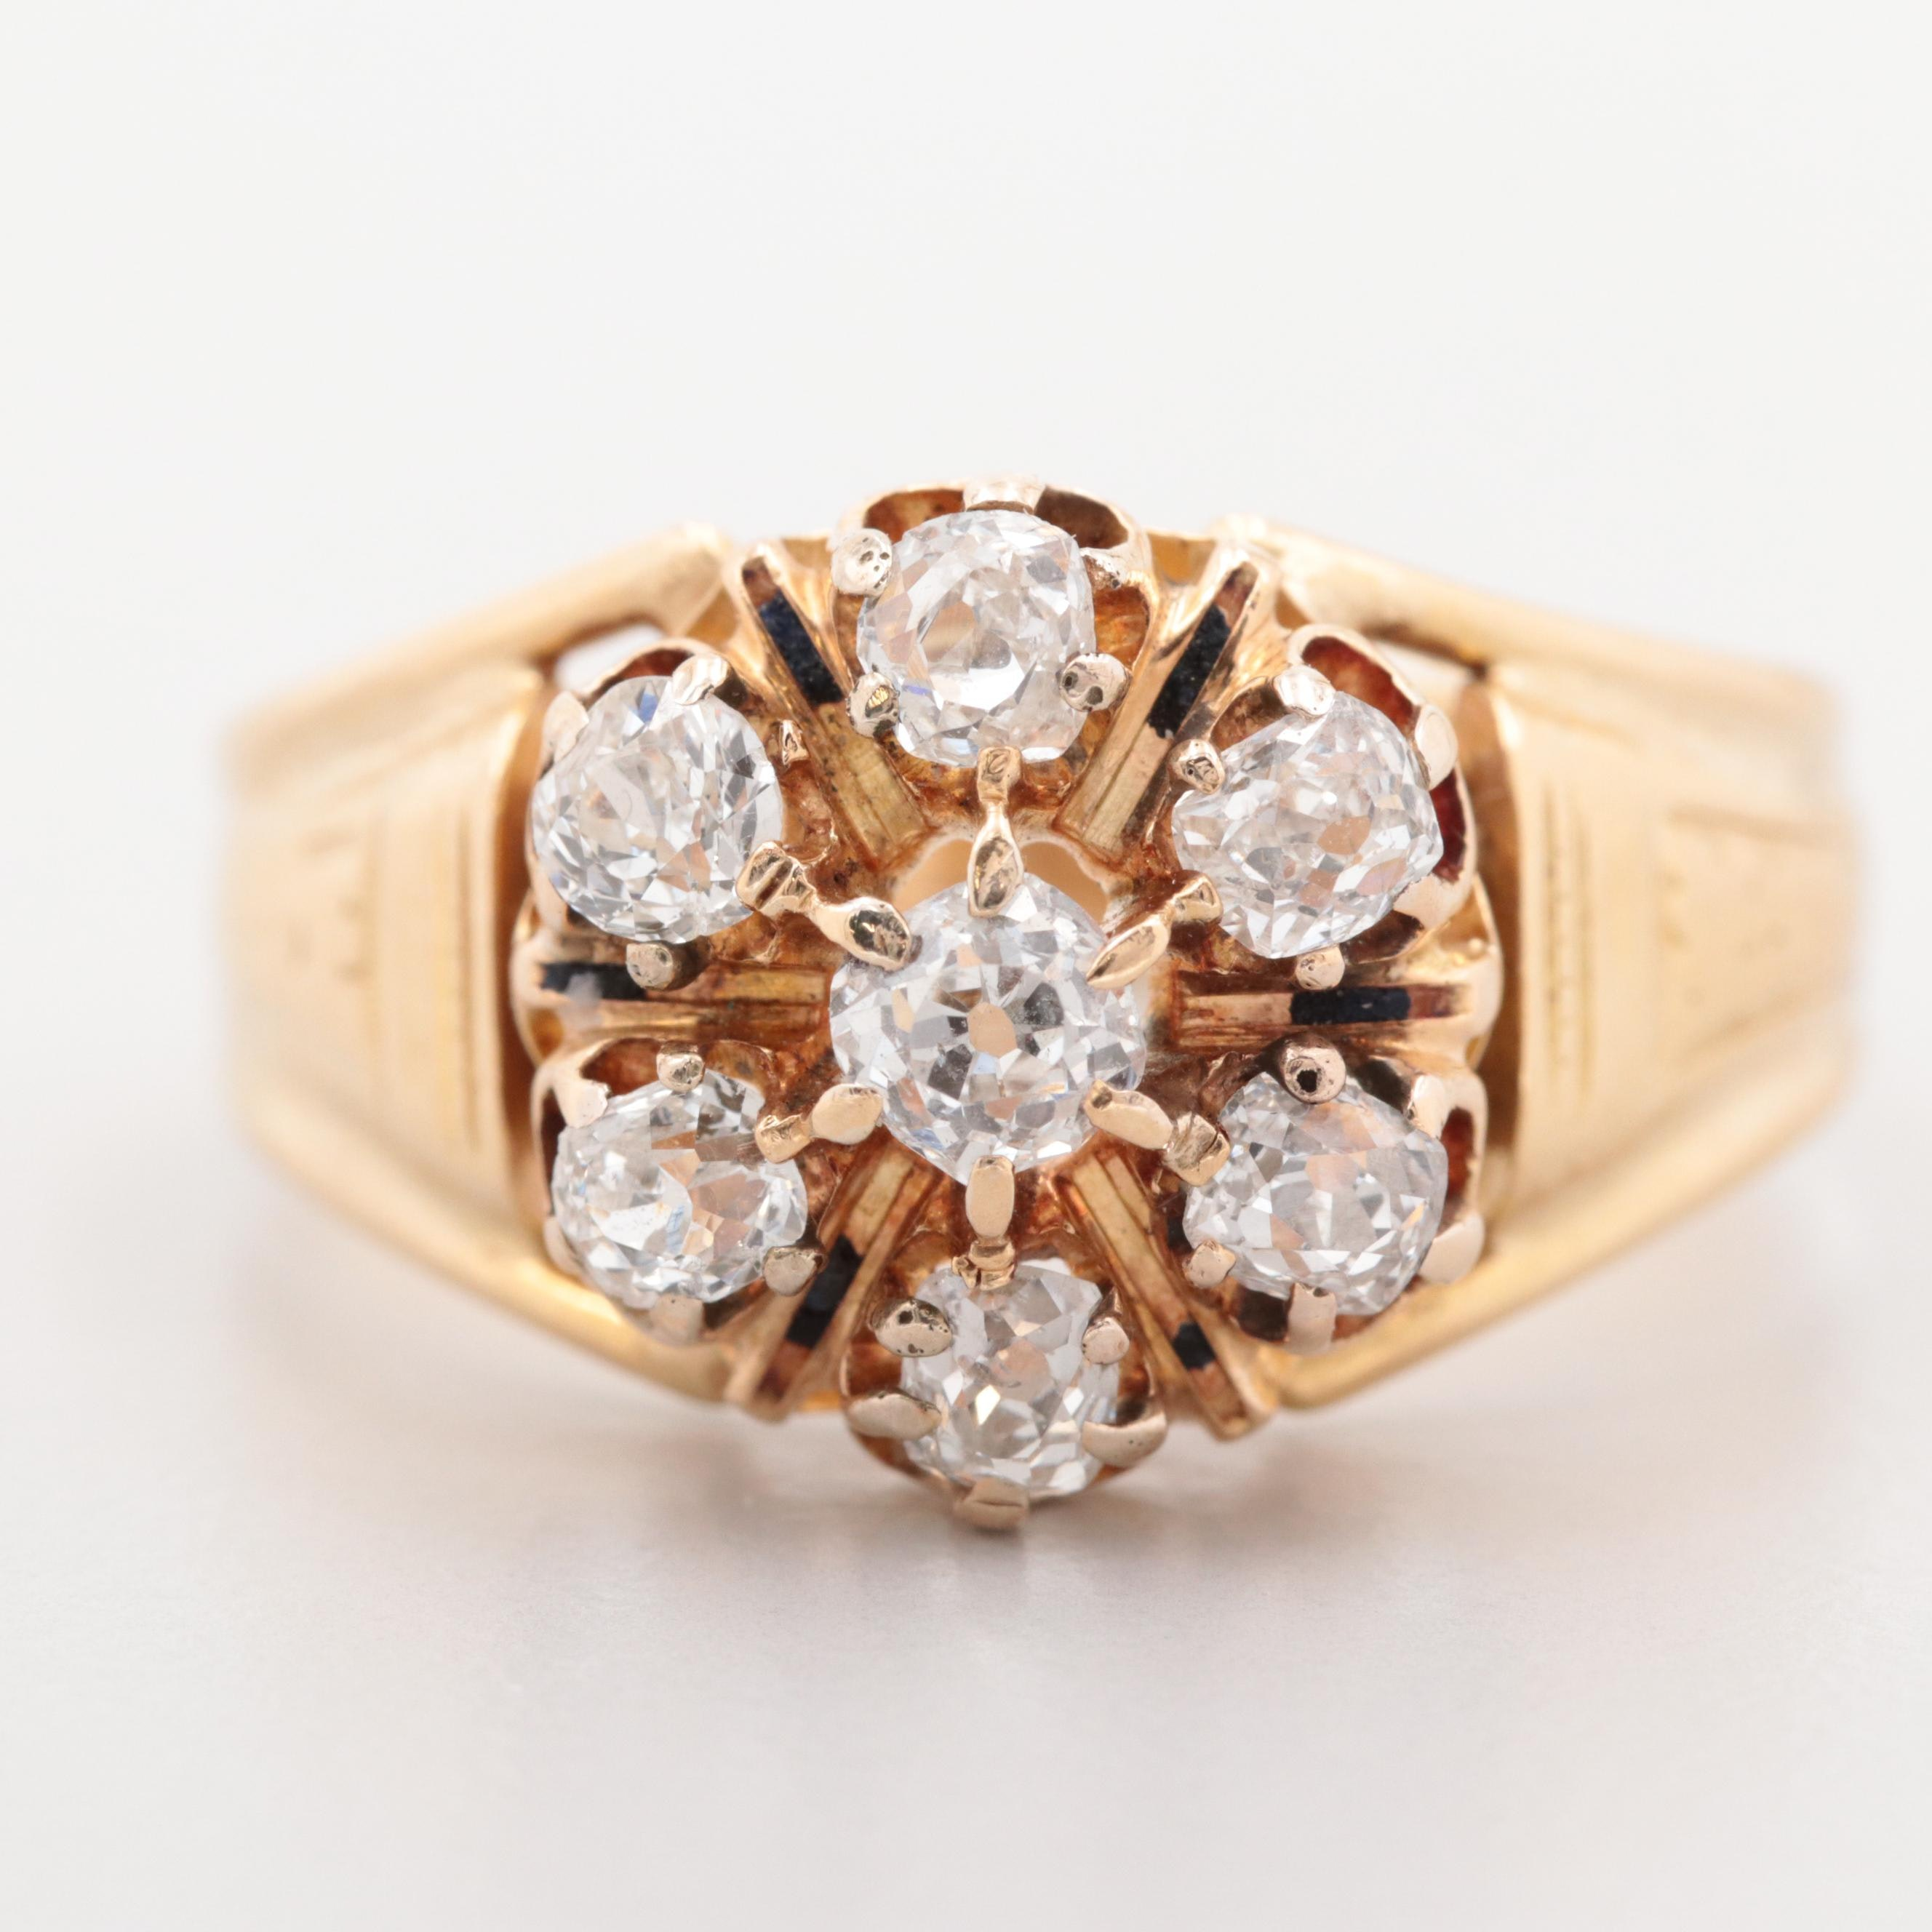 18K Yellow Gold 1.61 CTW Diamond and Vitreous Remnants Ring with Rose Accents